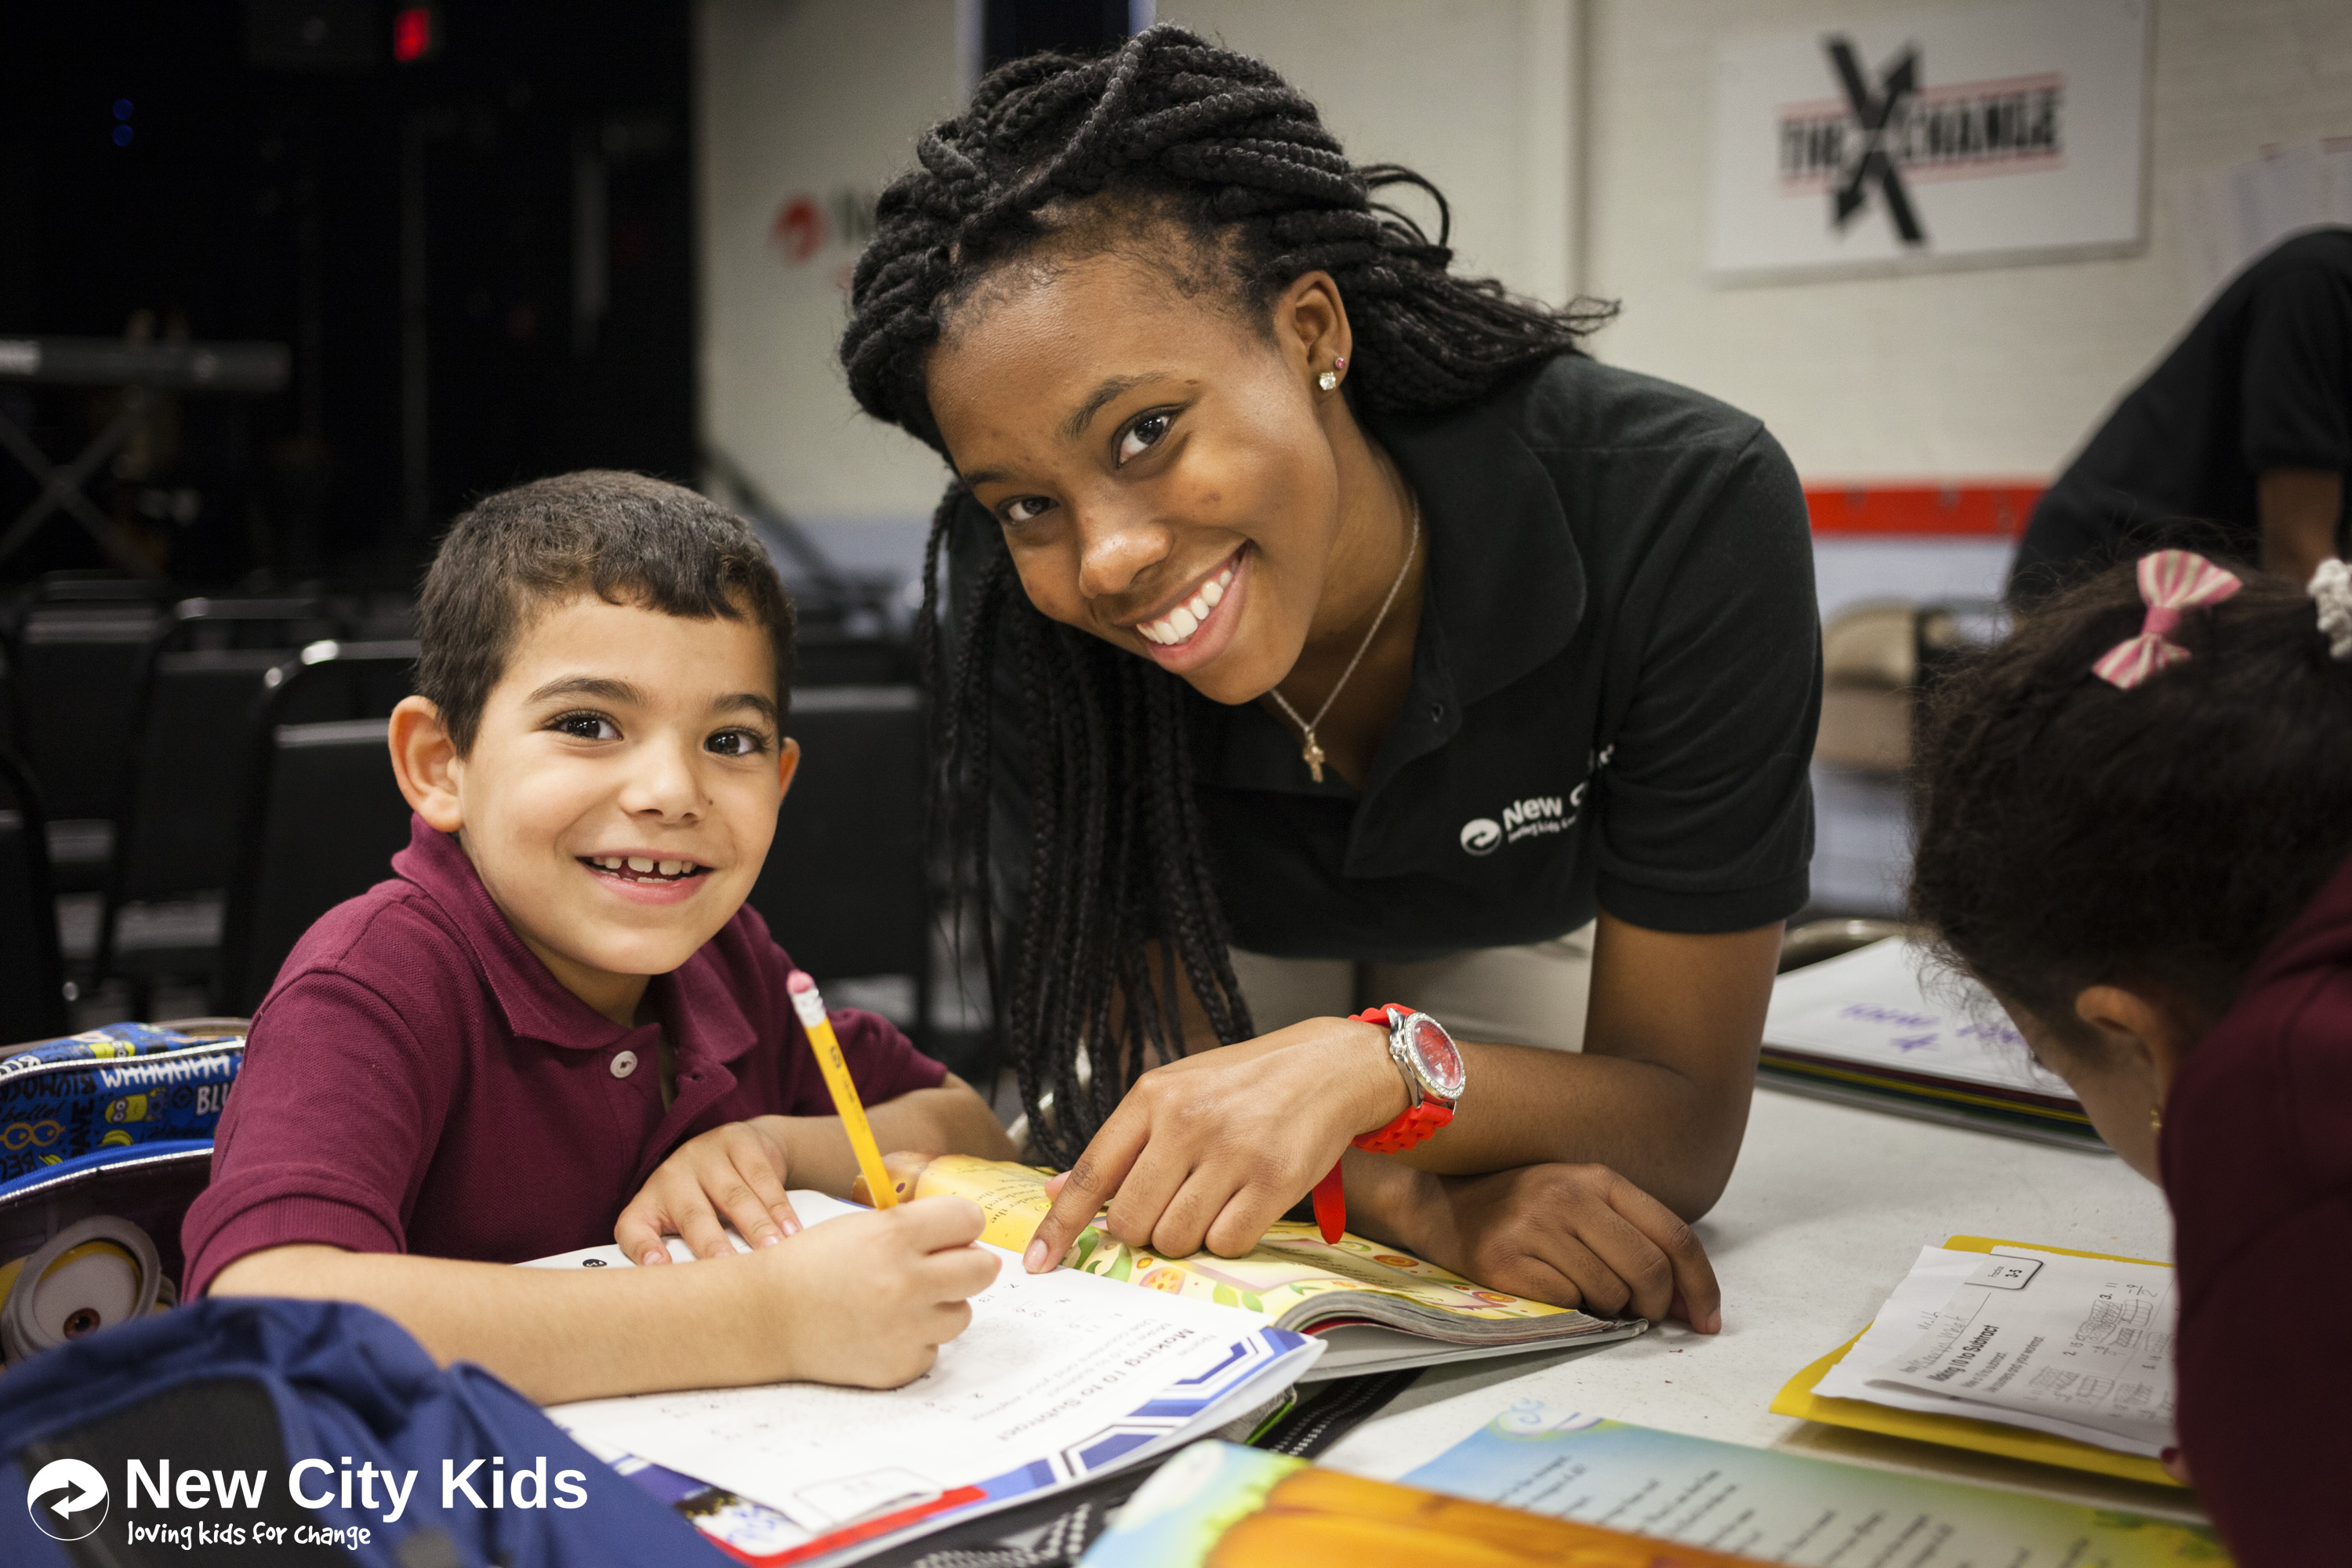 Teen Life Interns lead and support students in the After School Centers.